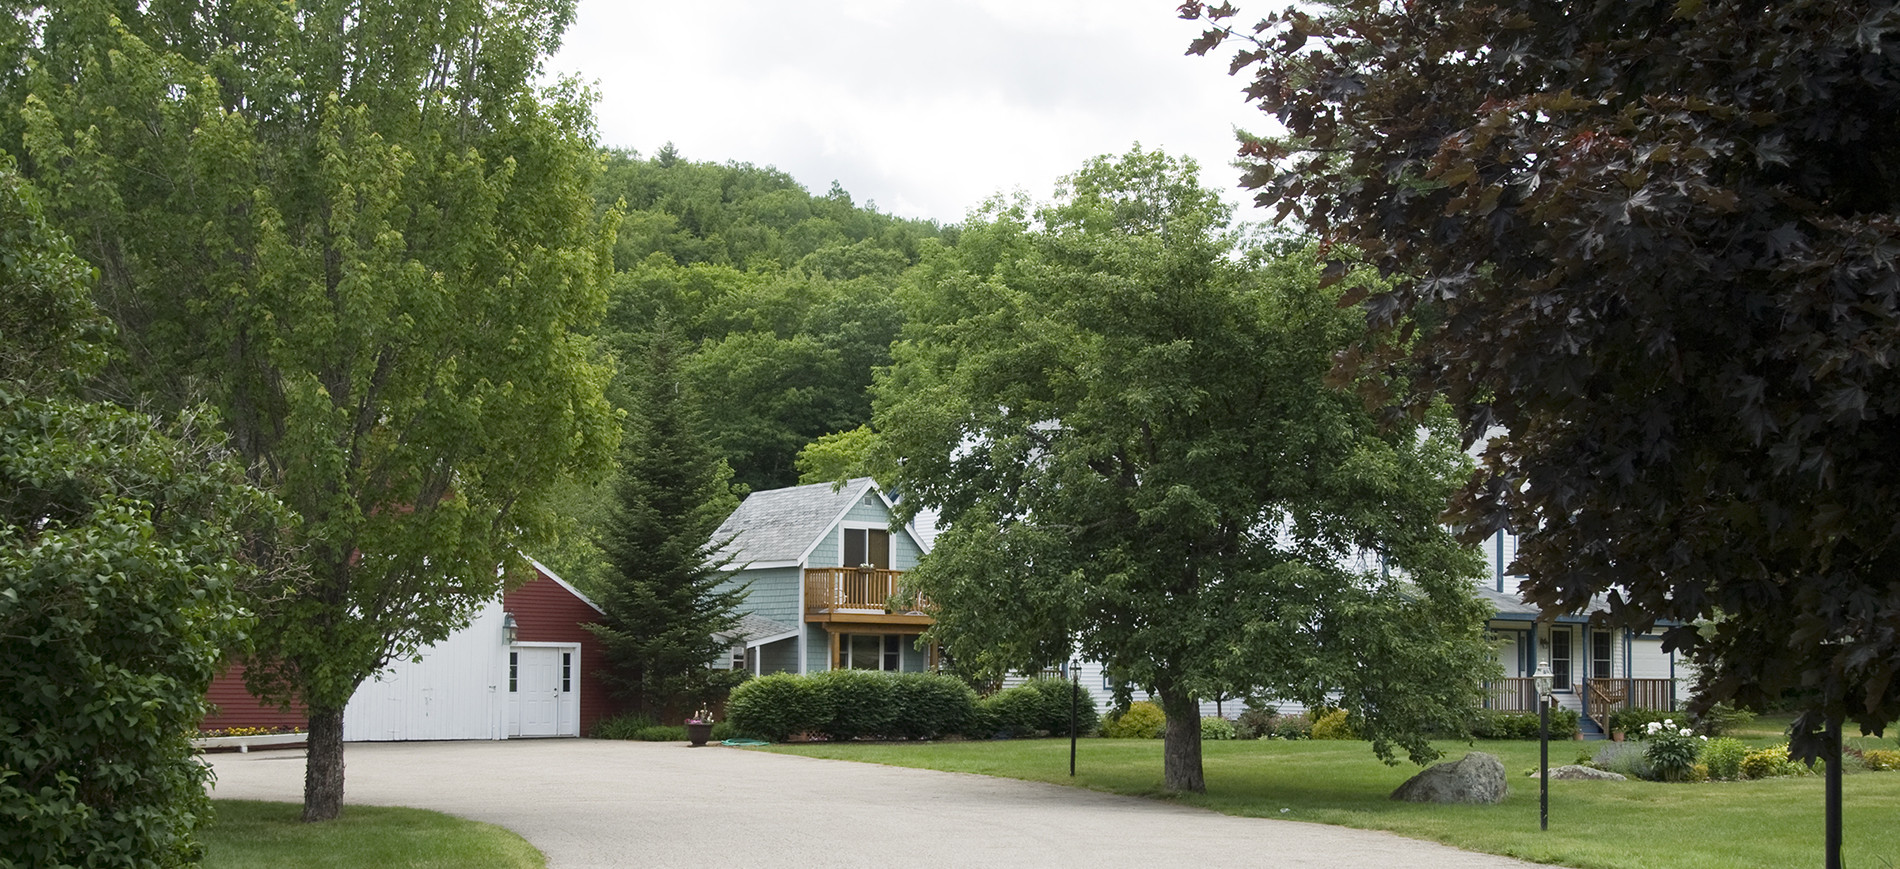 Entrance drive to Inn at Ellis River with Inn, red barn, cottage & trees